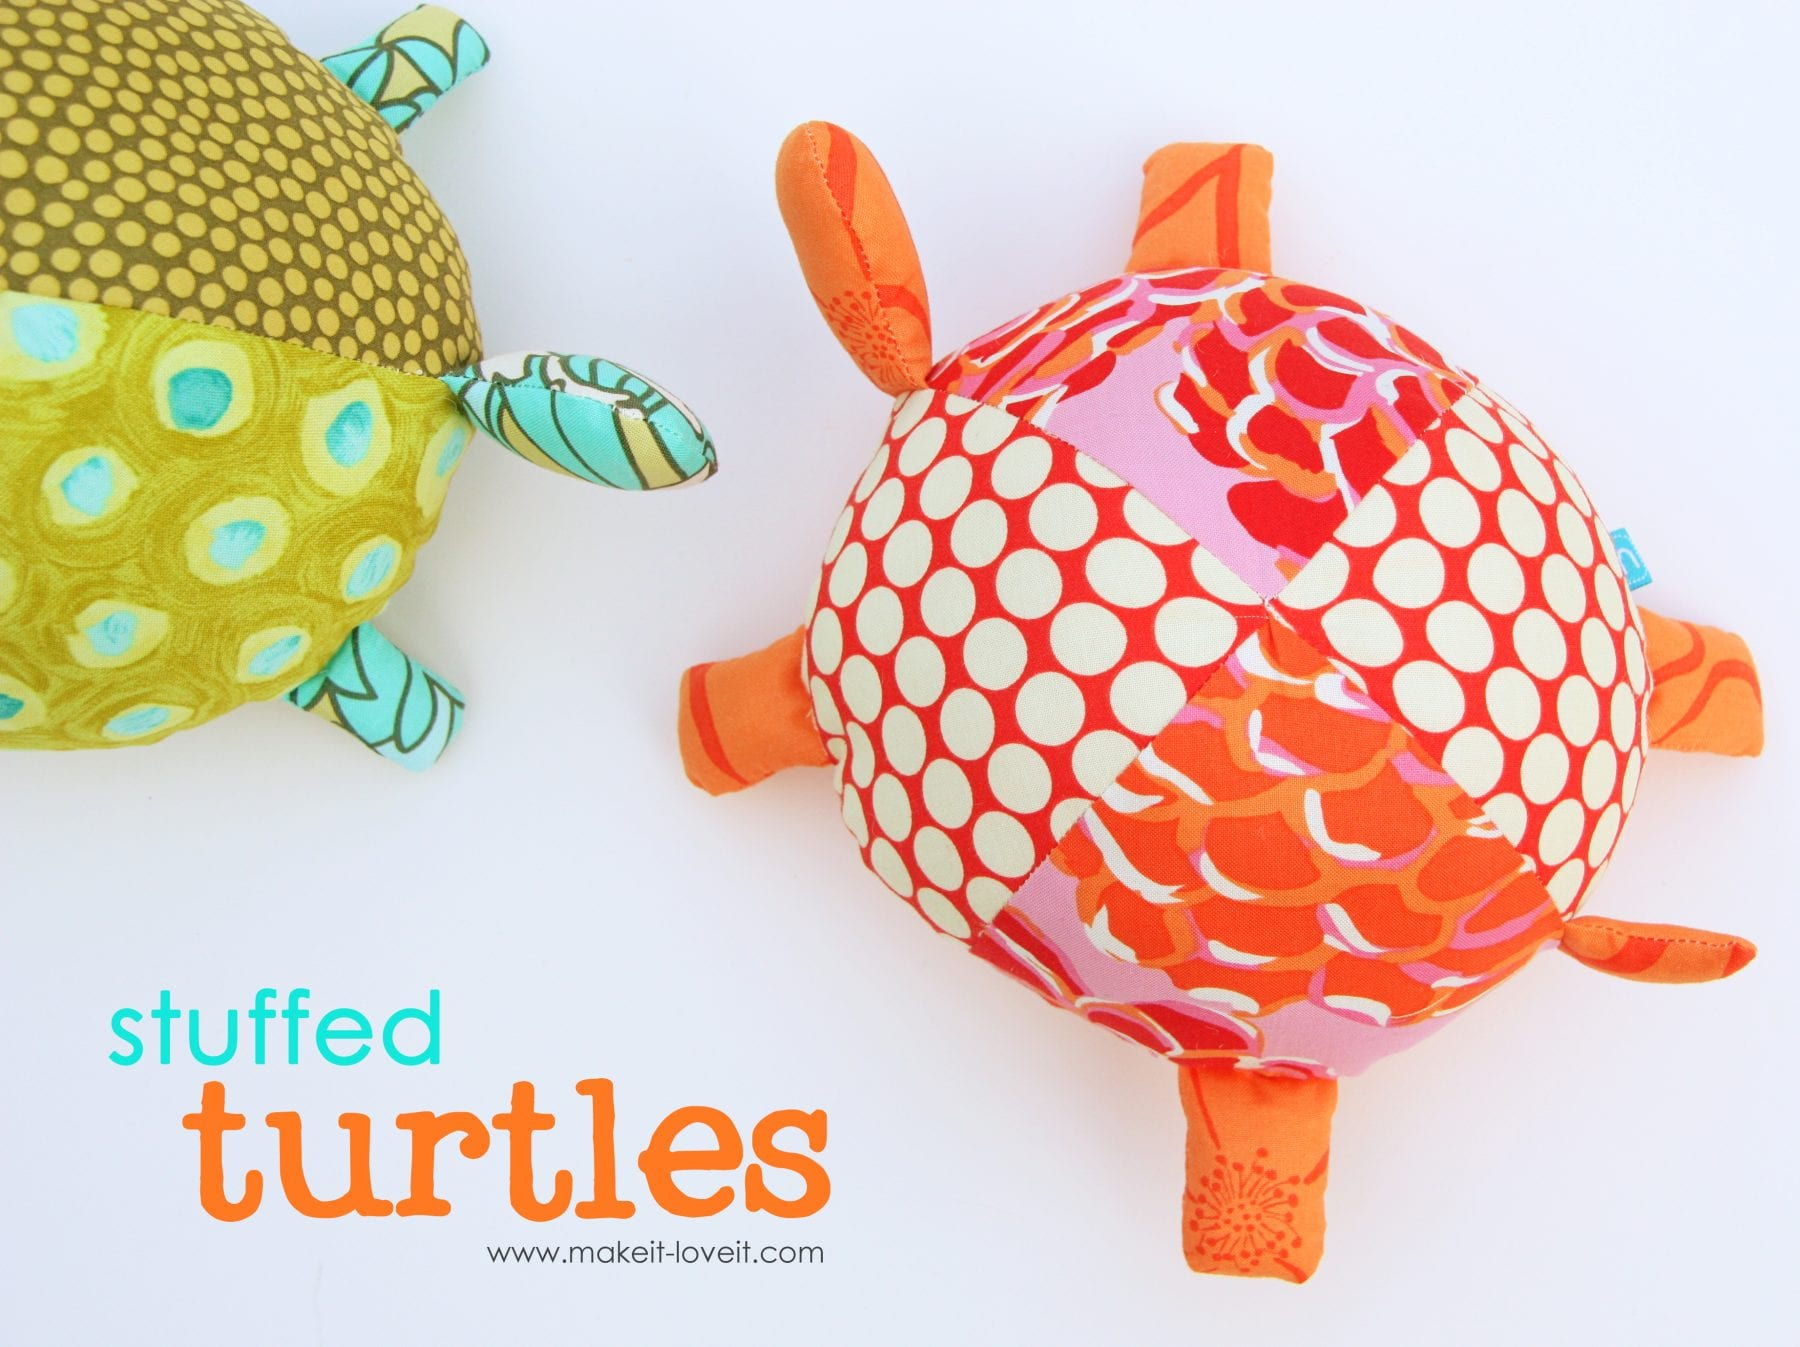 Stuffed Fabric Turtles (with pattern pieces)